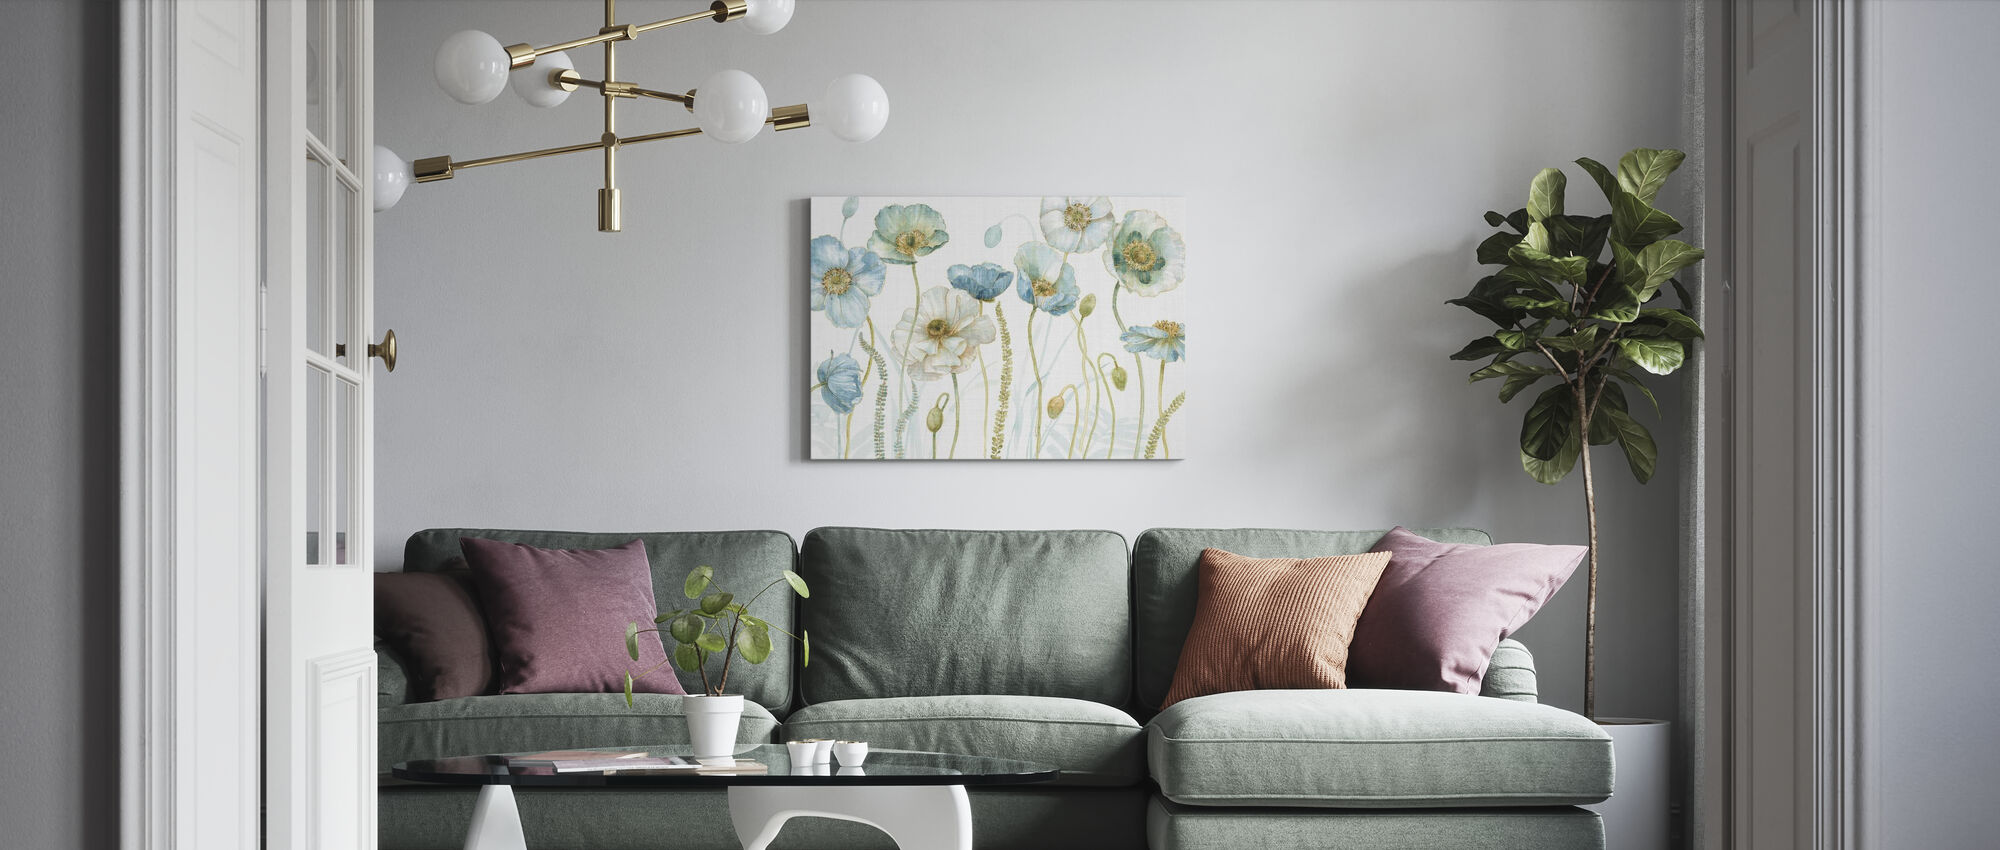 My Greenhouse Flowers on Linen - Canvas print - Living Room